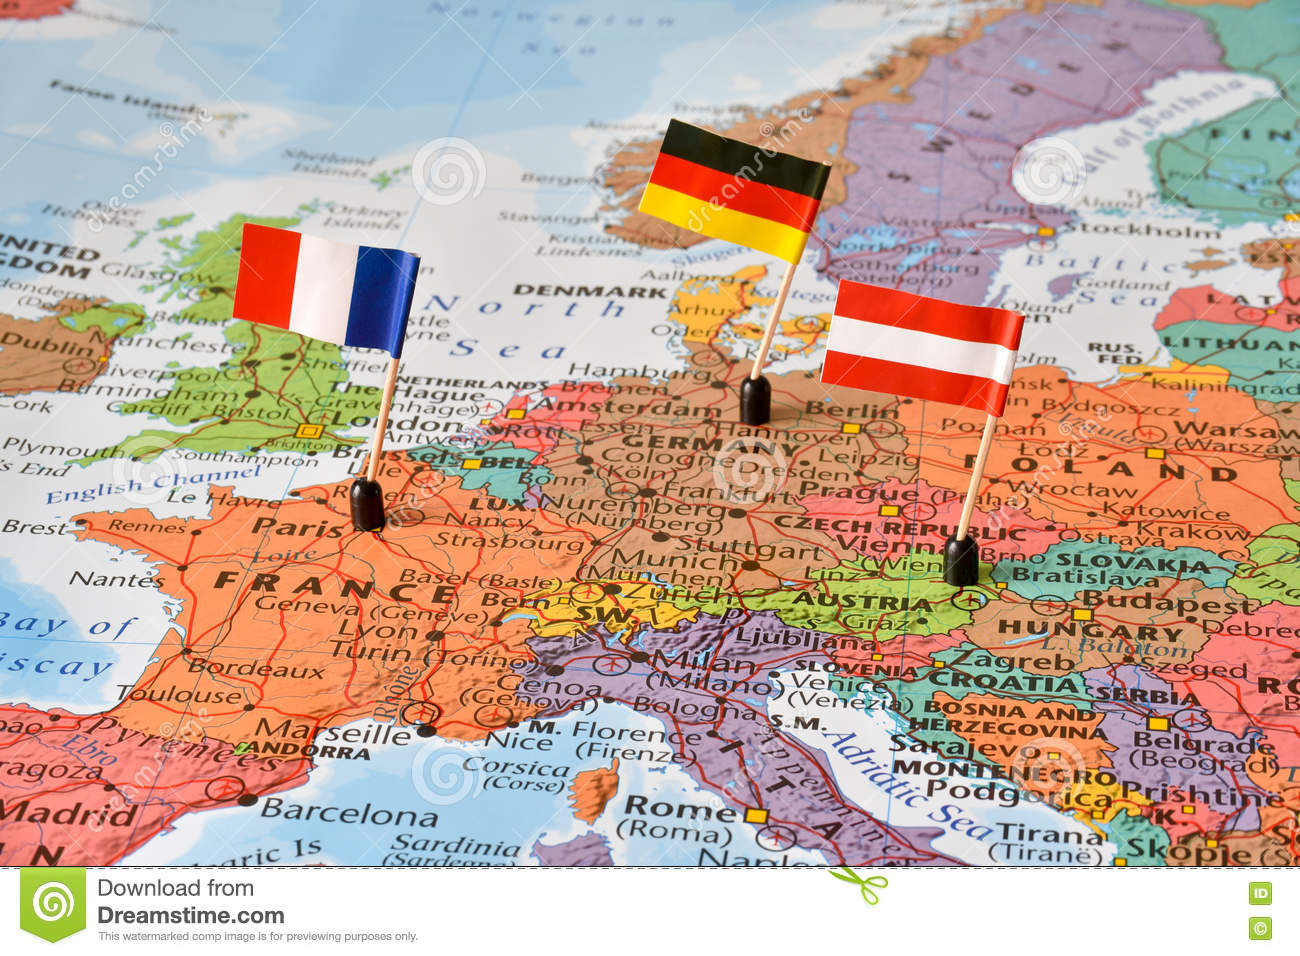 Map Of France Germany.Map Of The Western Europe Countries Germany France Austria Stock